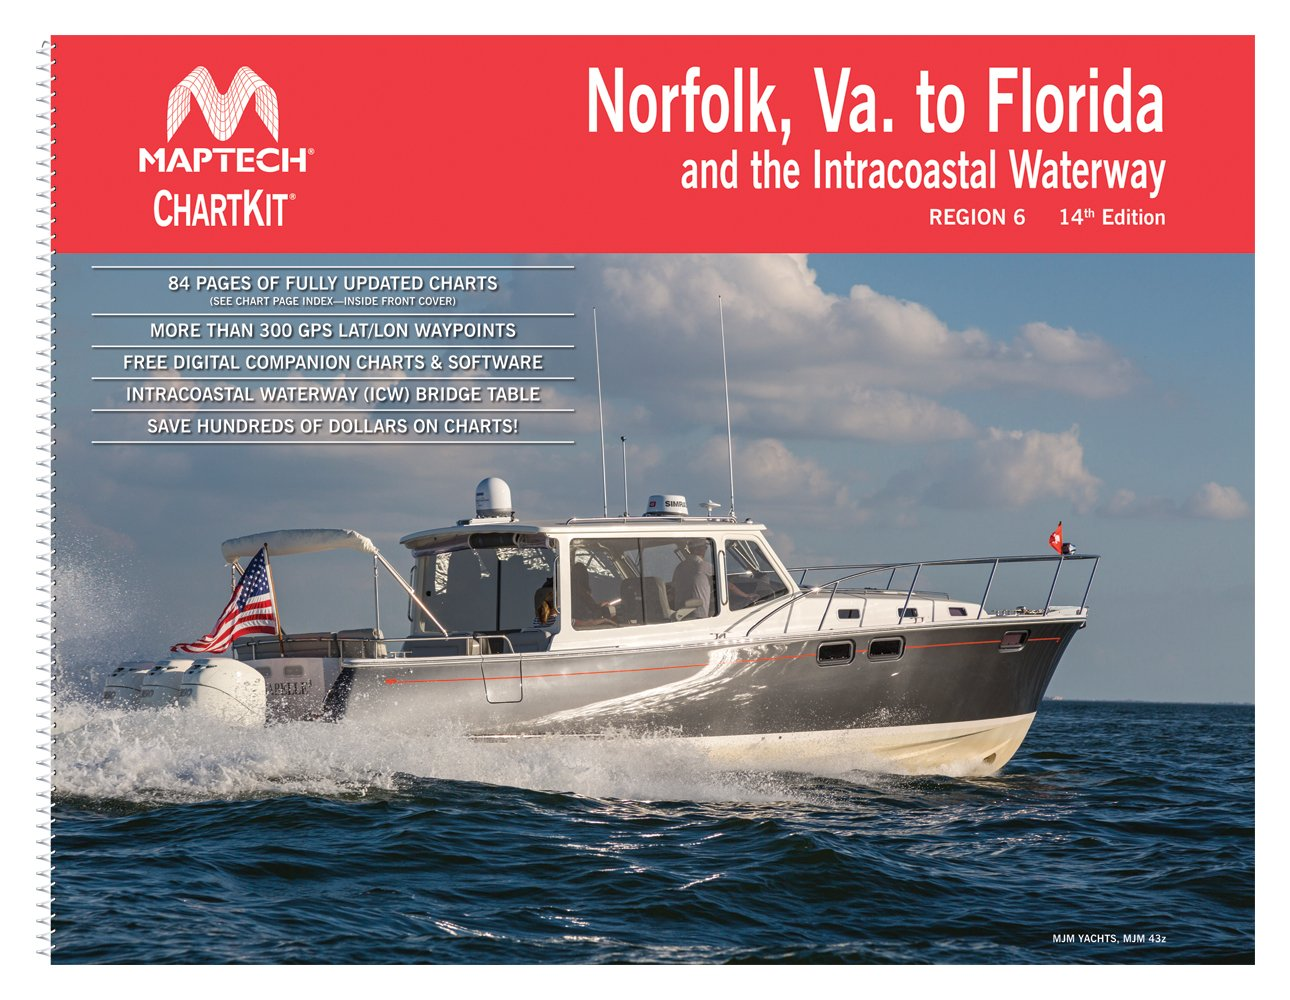 Norfolk, VA, to Florida and the Intracoastal Waterway ChartKit Region 6 14th Edition by MAPTECH®